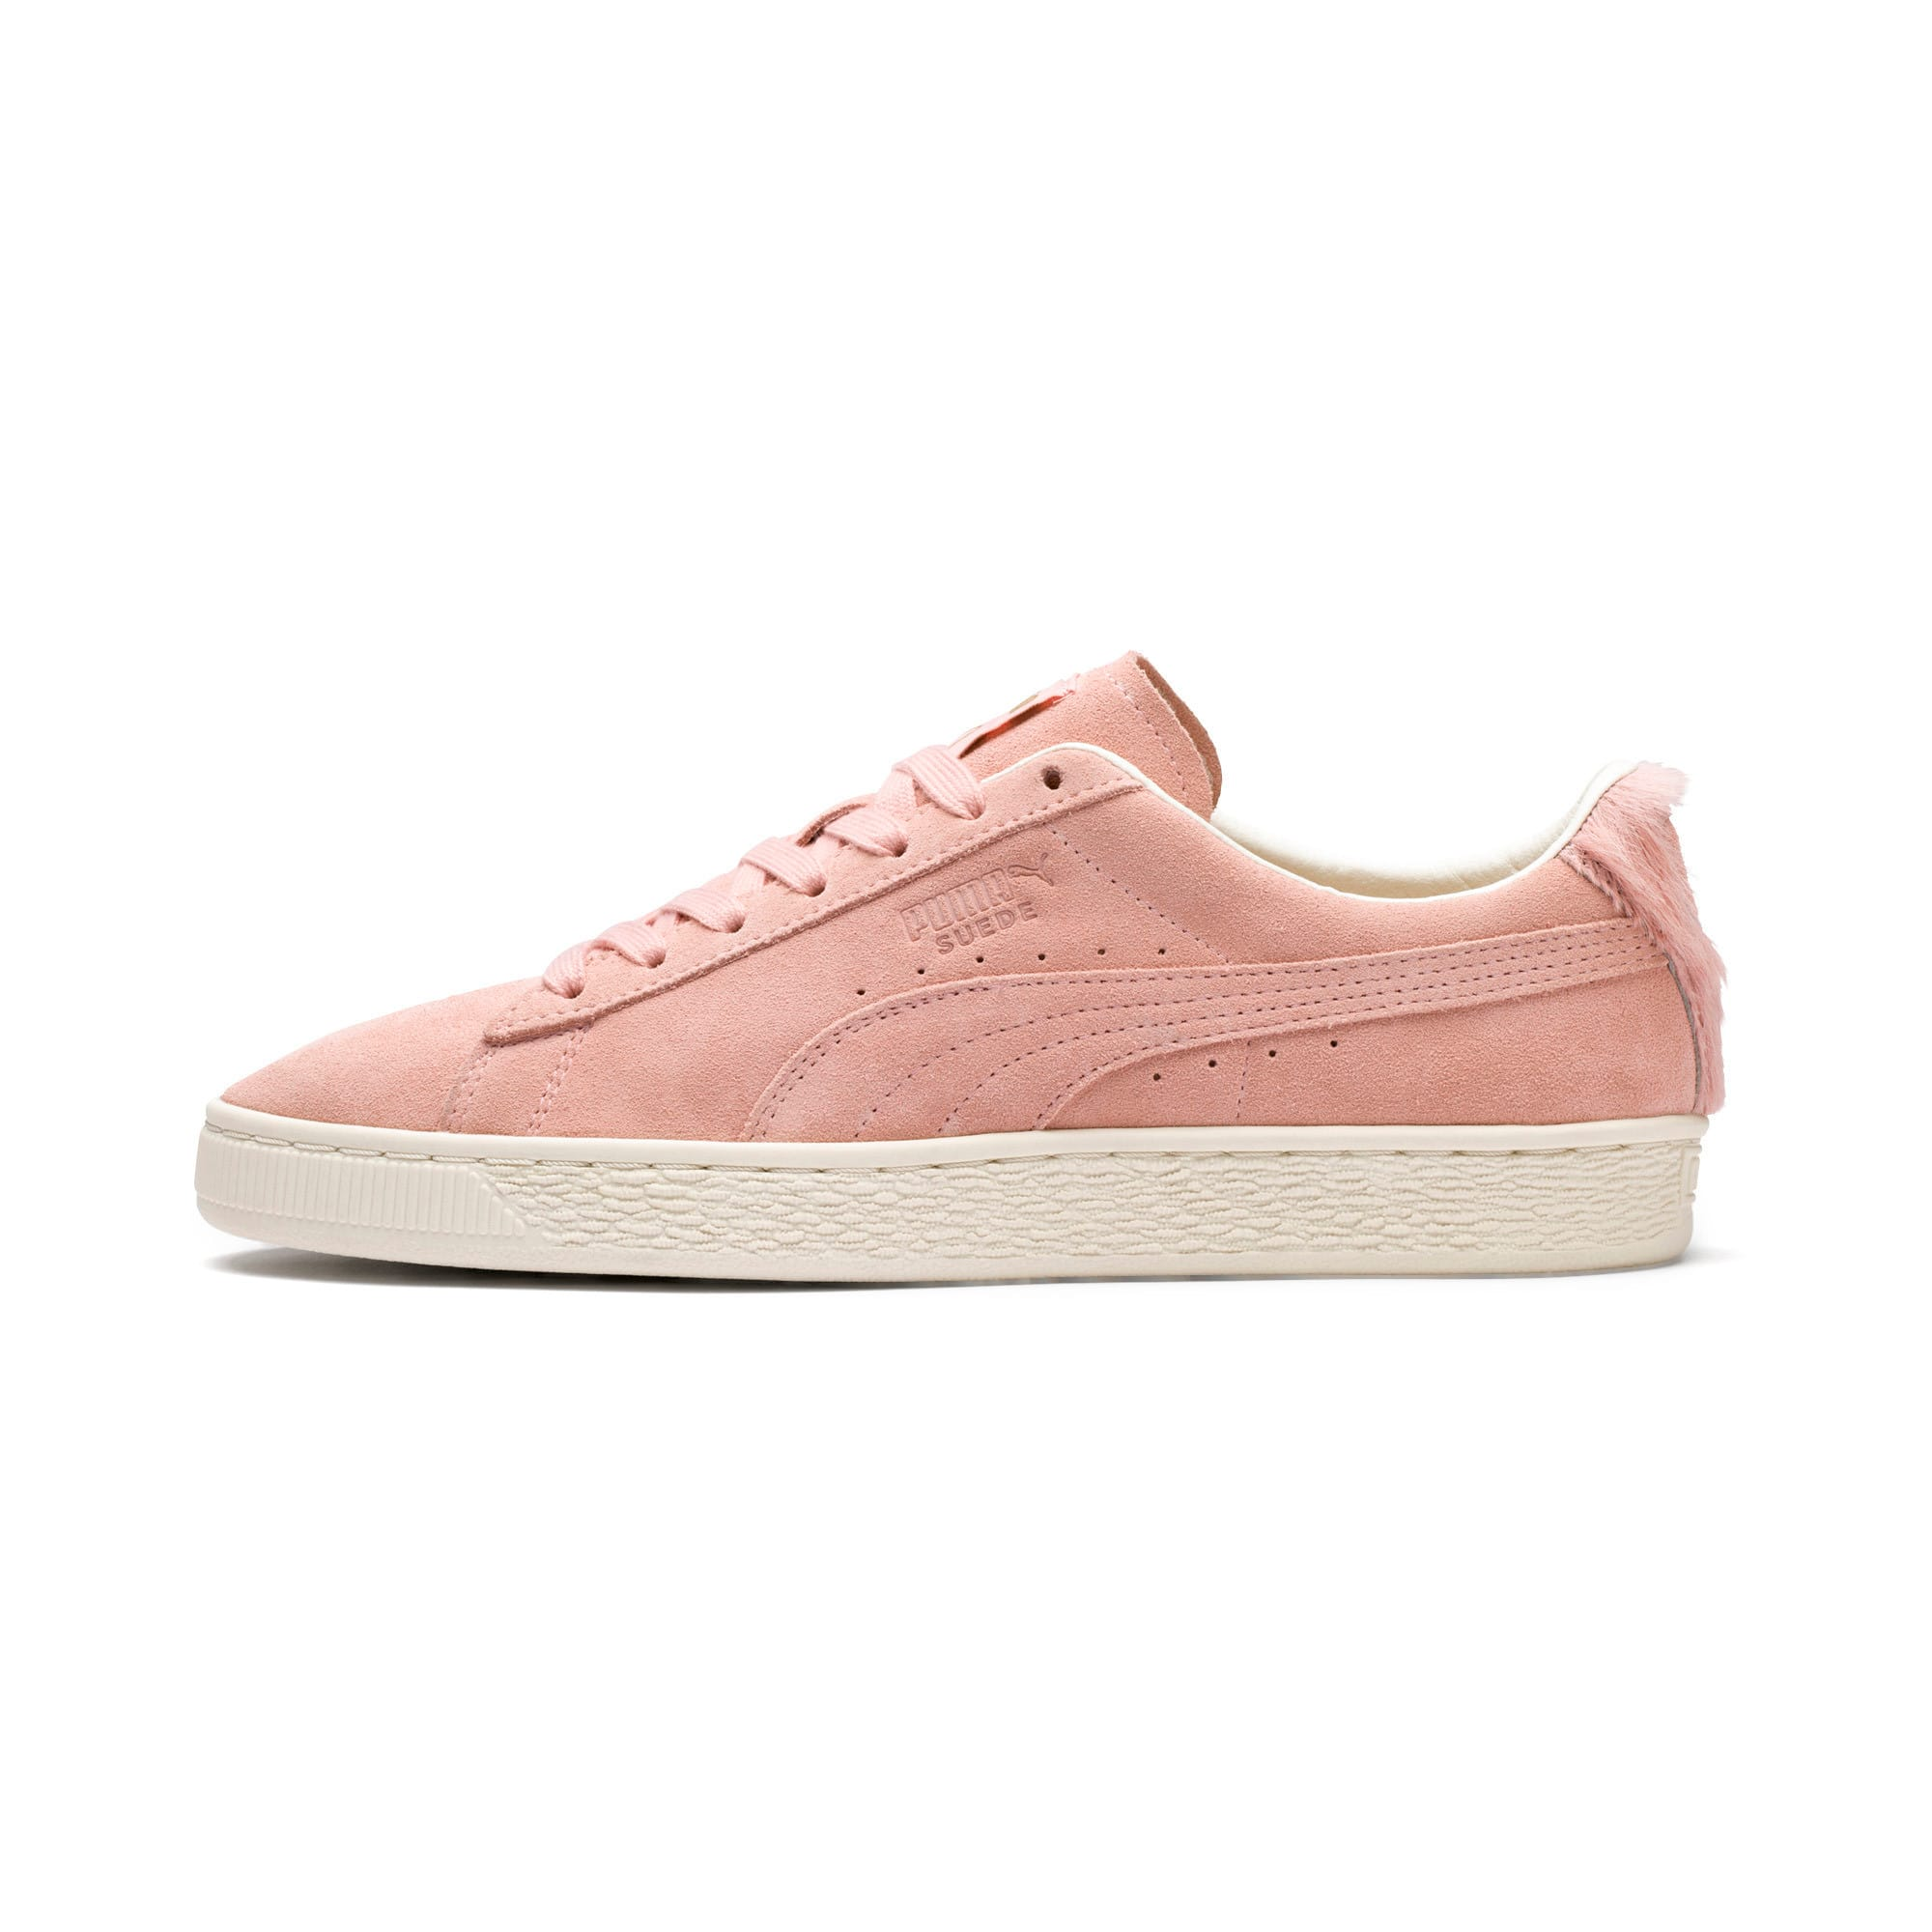 Thumbnail 1 of Suede Classic Easter Sneakers, Coral Cloud-Whisper White, medium